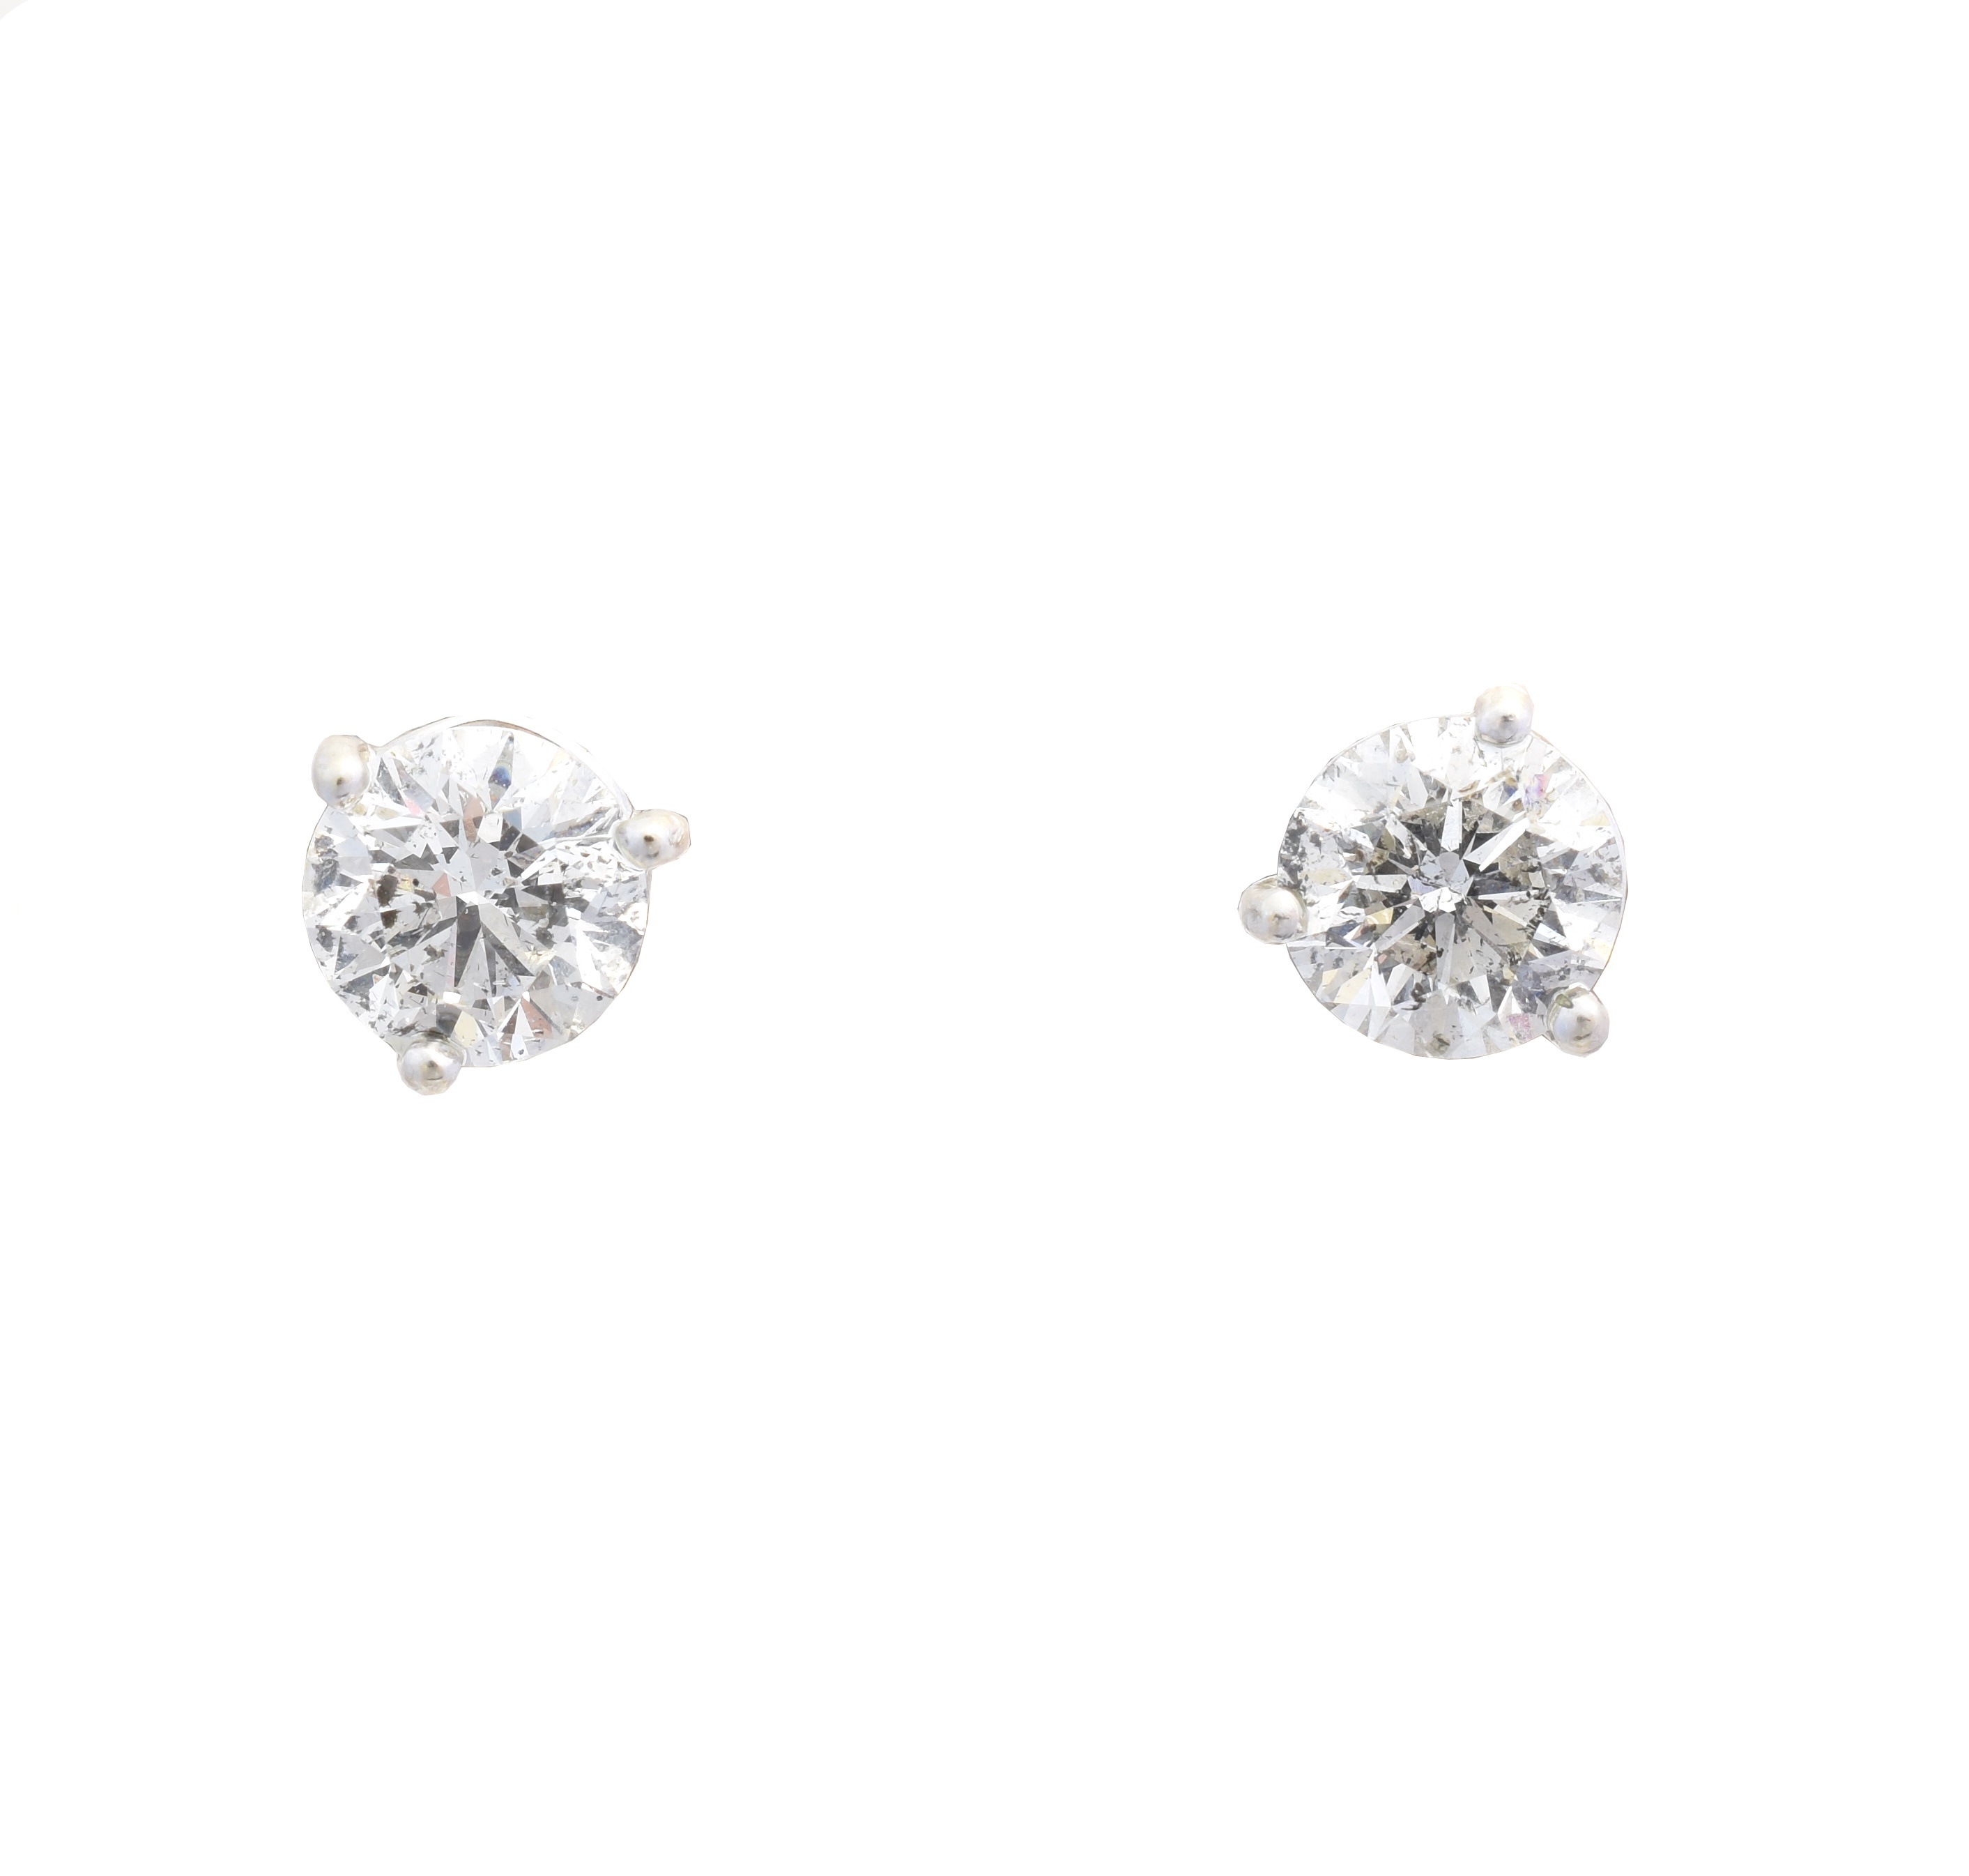 A pair of brilliant cut diamond stud earrings, estimated total diamond weight 2.45cts, estimated colour I-J, estimated clarity P1-P2, stamped 585, gross weight 2.5g.